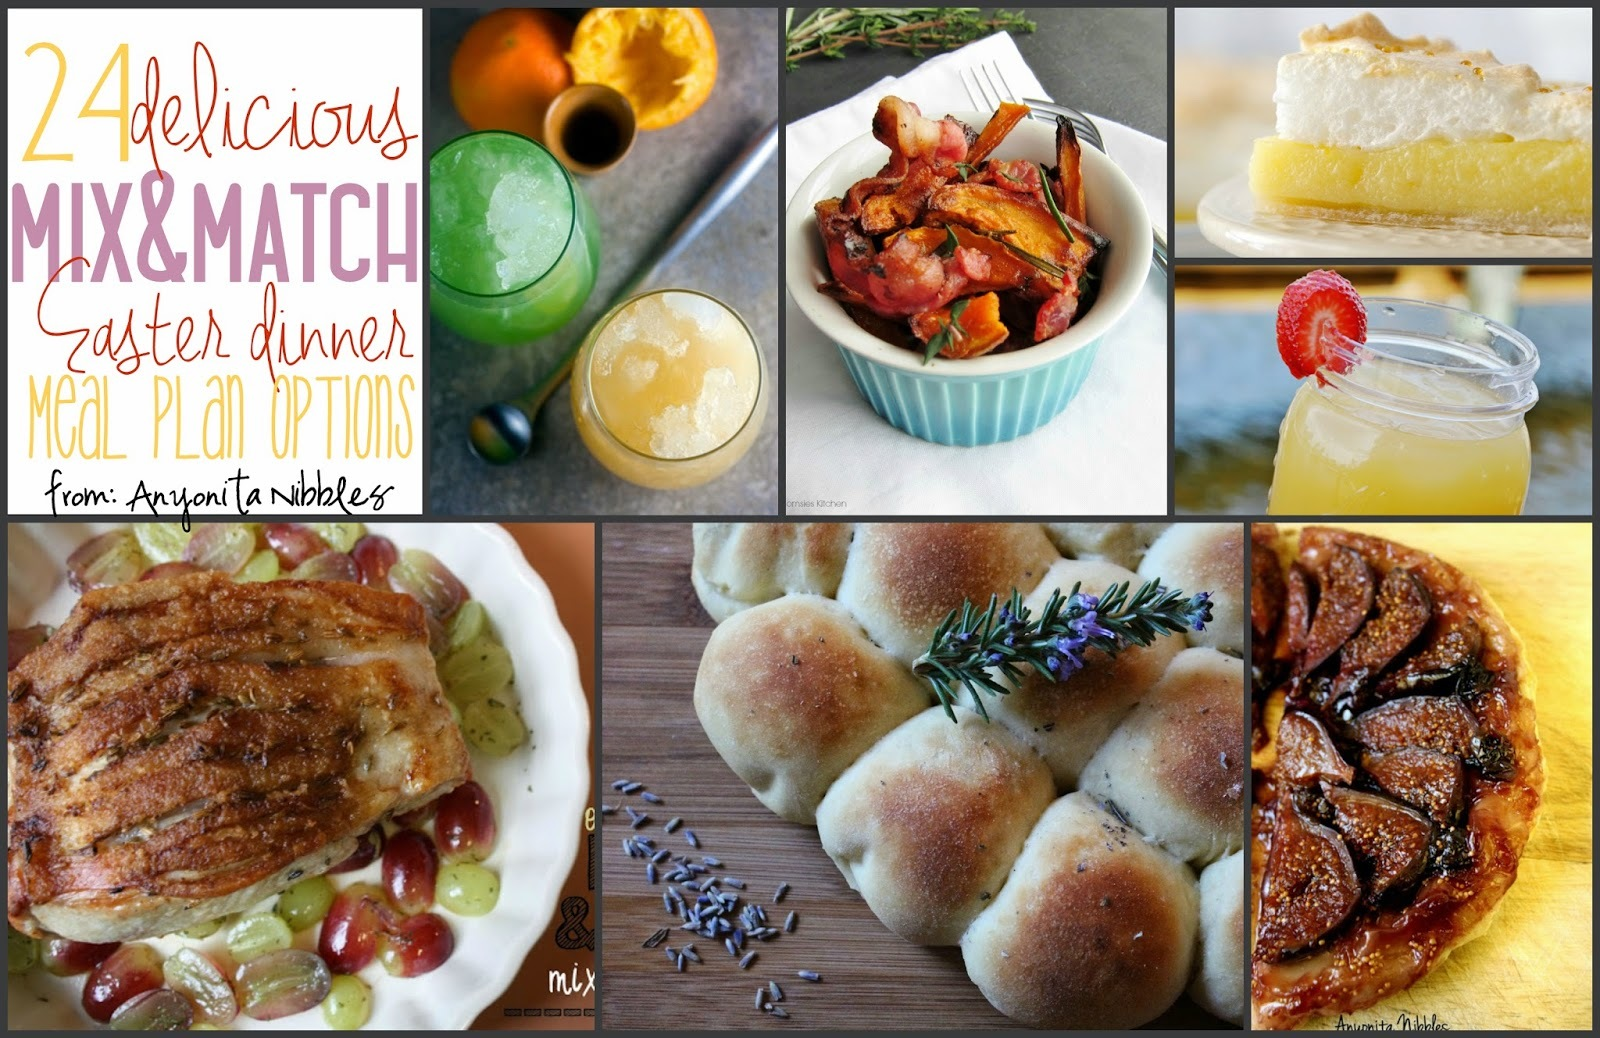 24 Delicious Mix & Match Easter Dinner Meal Plan Options